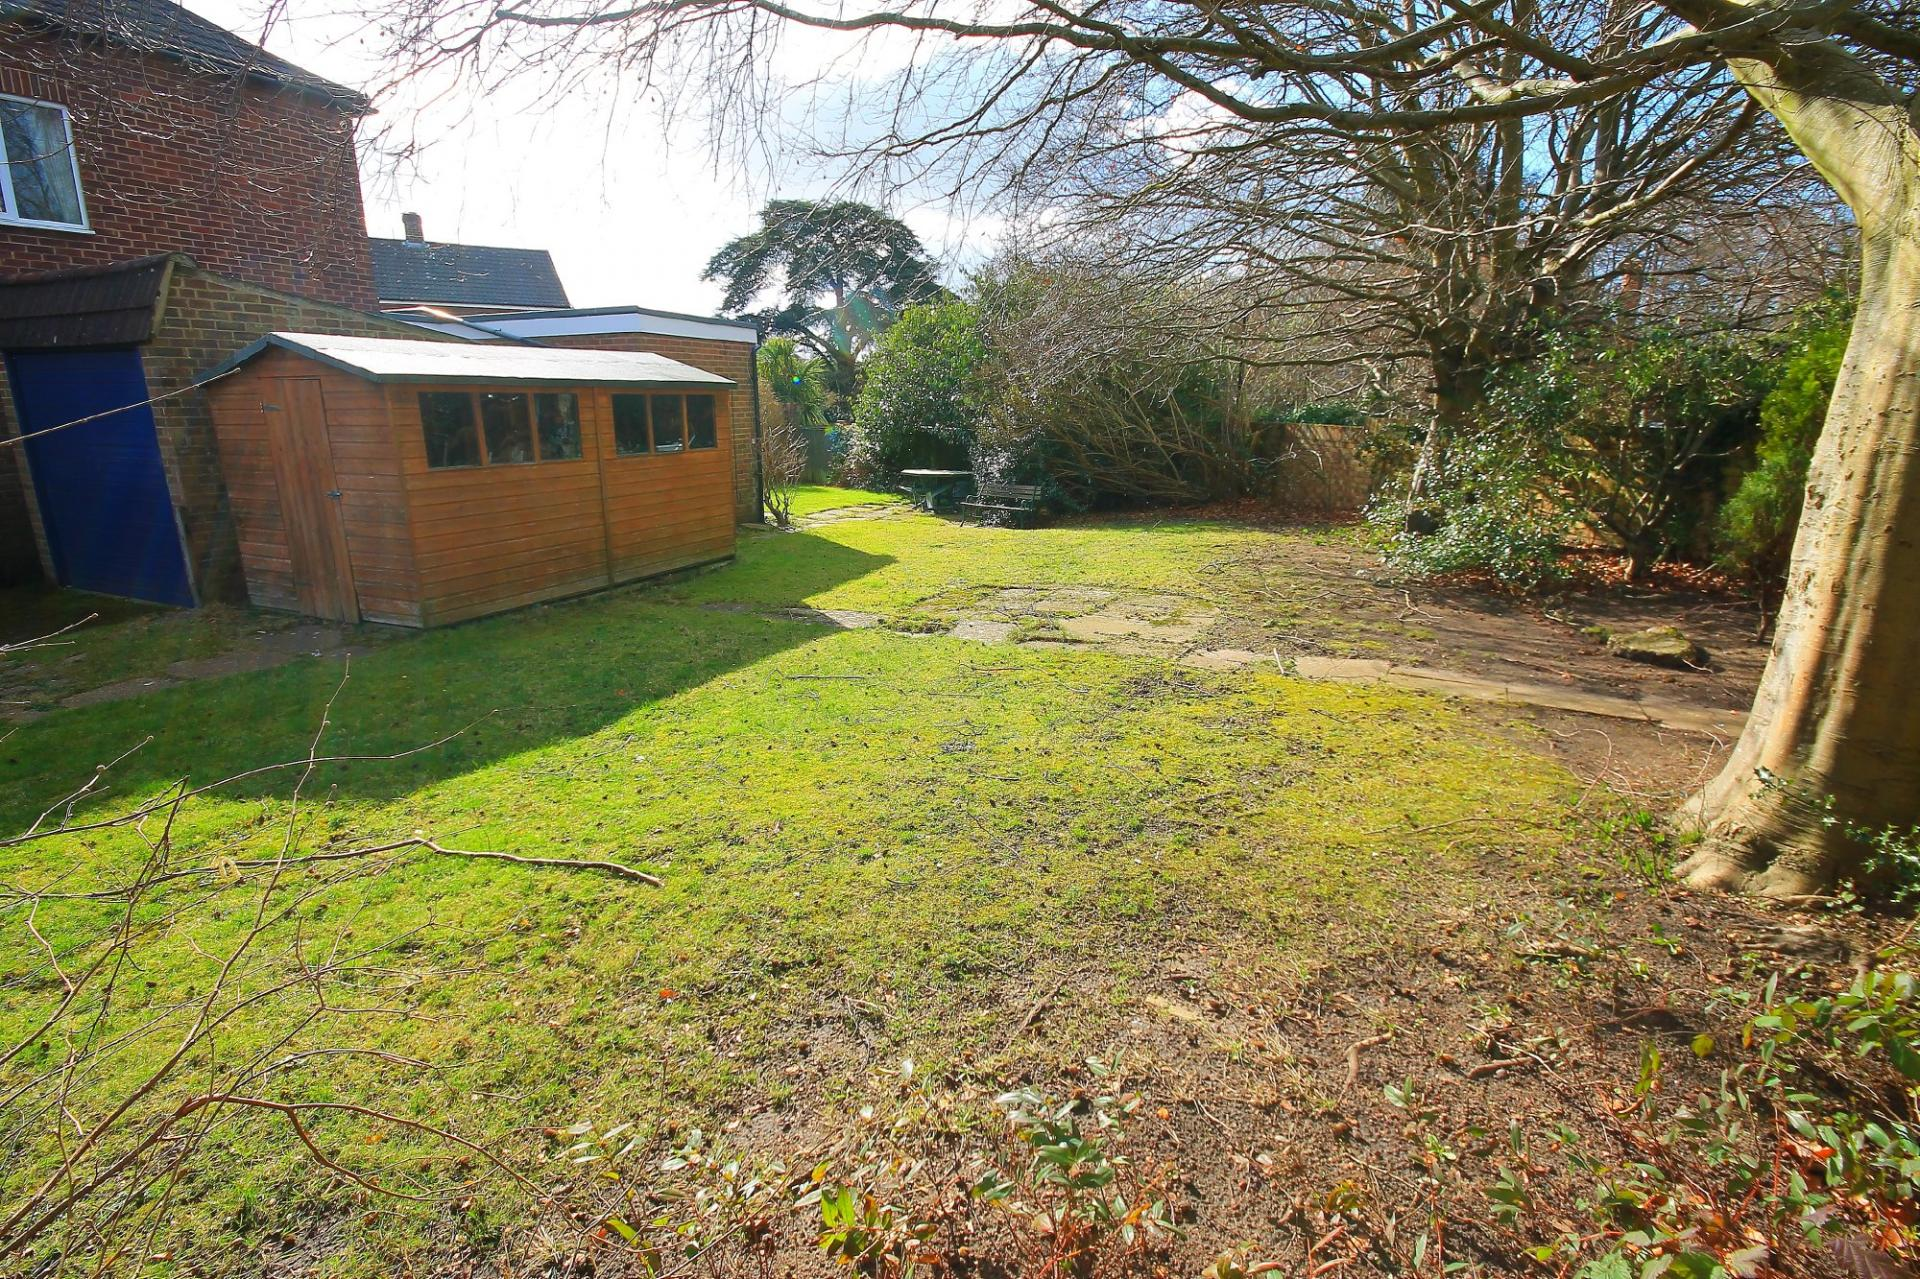 3 Bedroom Semi Detached House For Sale In Camberley